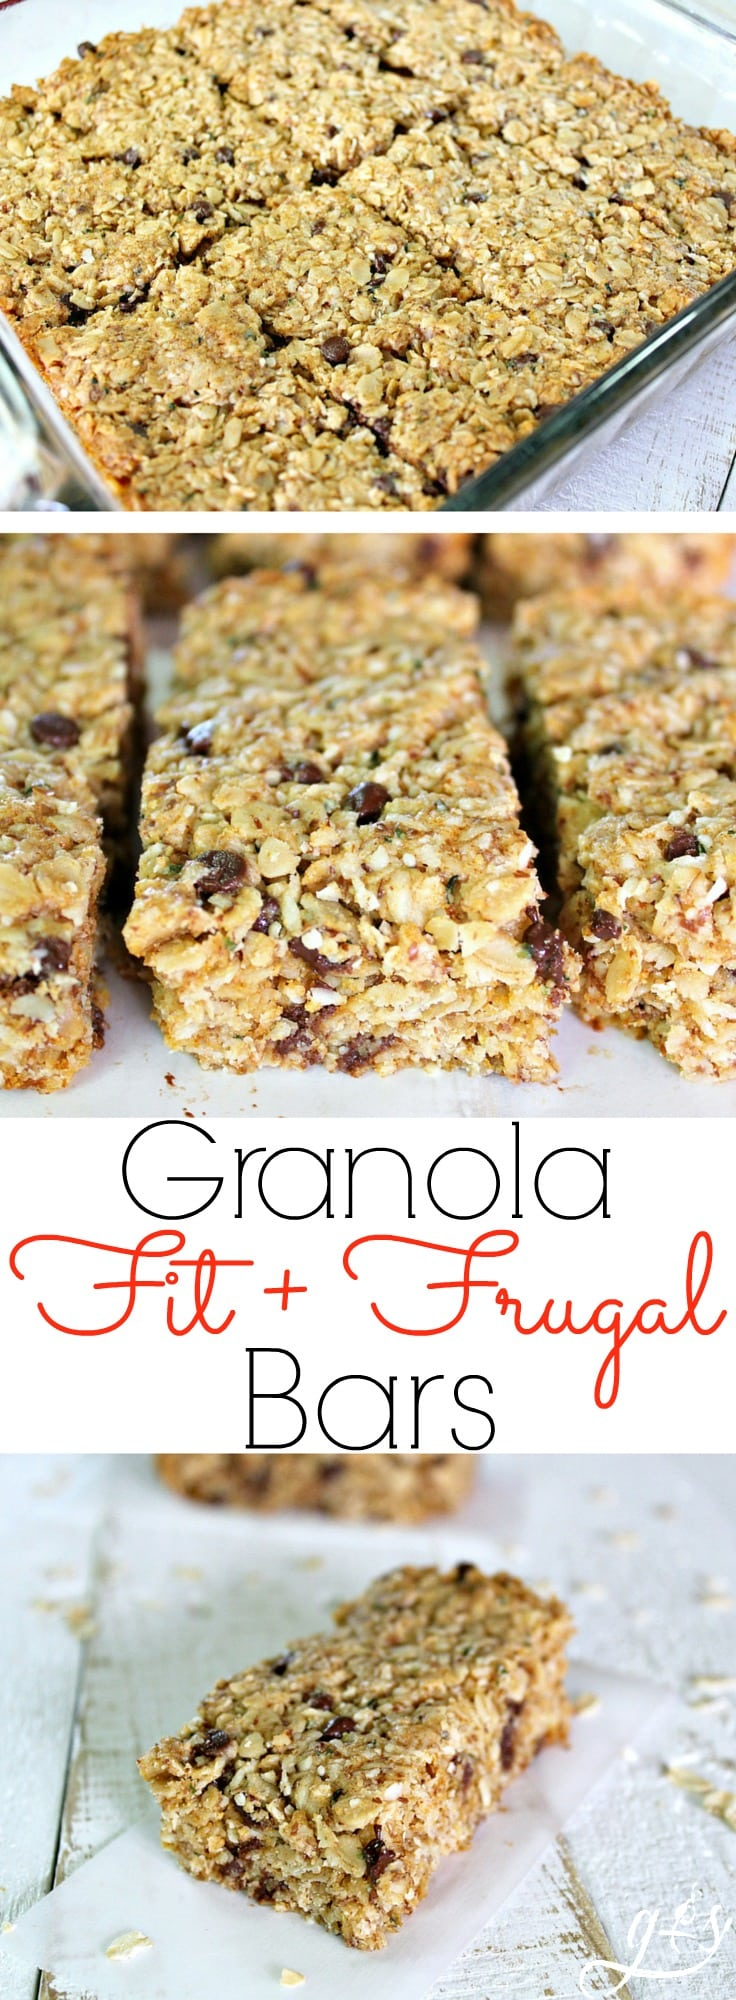 These Fit & Frugal Granola Bars are made with healthy gluten free ingredients to create chewy granola bars you feel good about feeding your kids. This homemade recipe is a perfect snack or addition to any school lunch. They are packed with superfoods like ground flax seeds, hemp seeds and coconut! But any add-ins will work! We never skip the chocolate chips but the possibilities are endless. Look no further, you have found the BEST granola bar recipe on Pinterest!